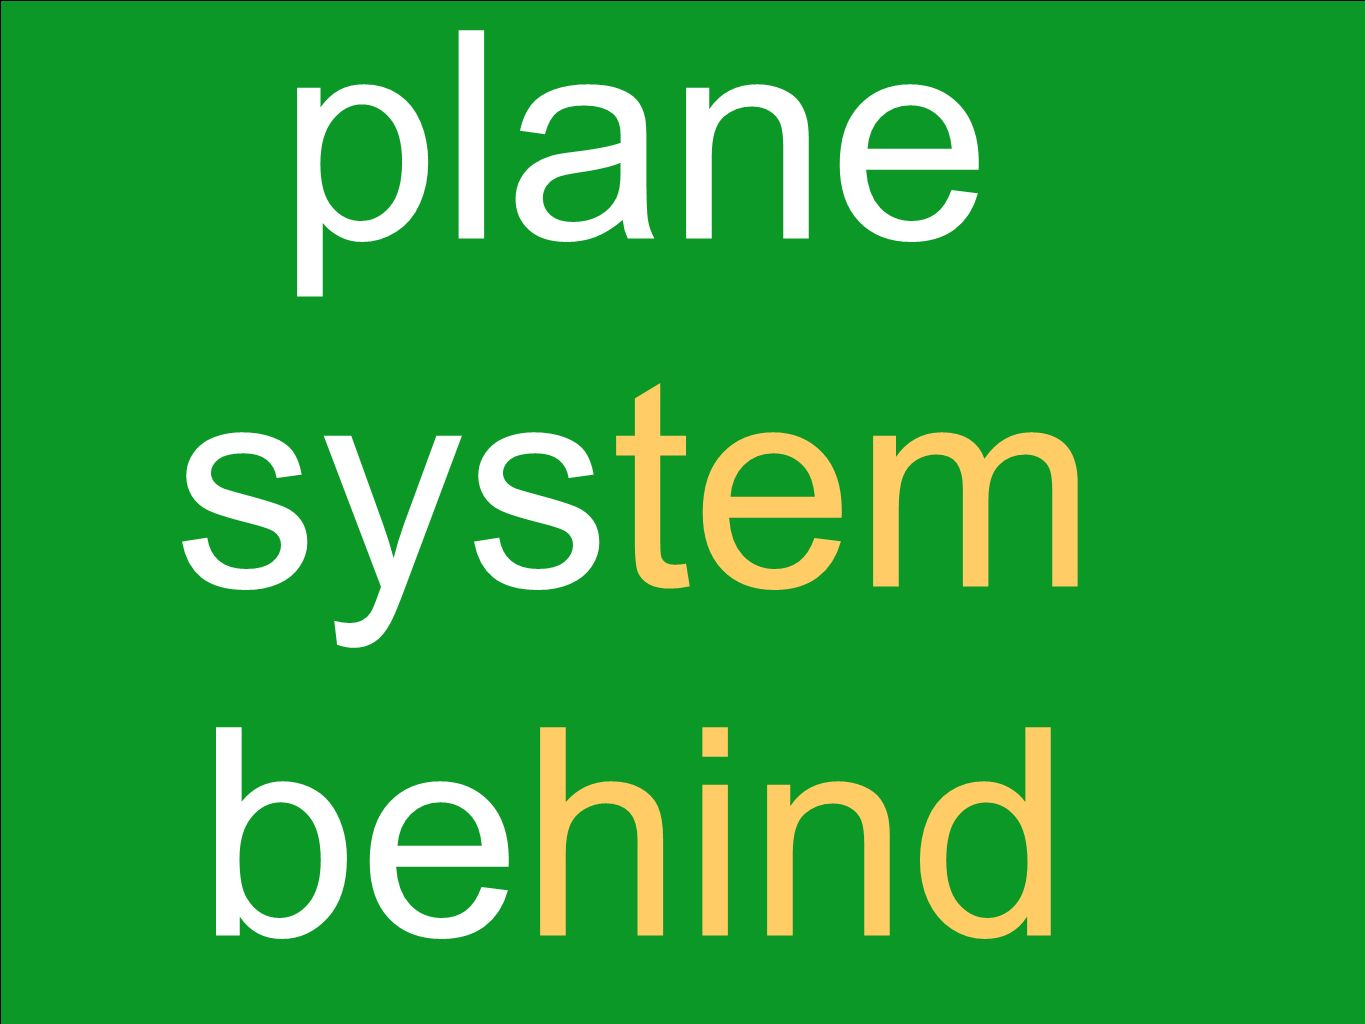 plane system behind